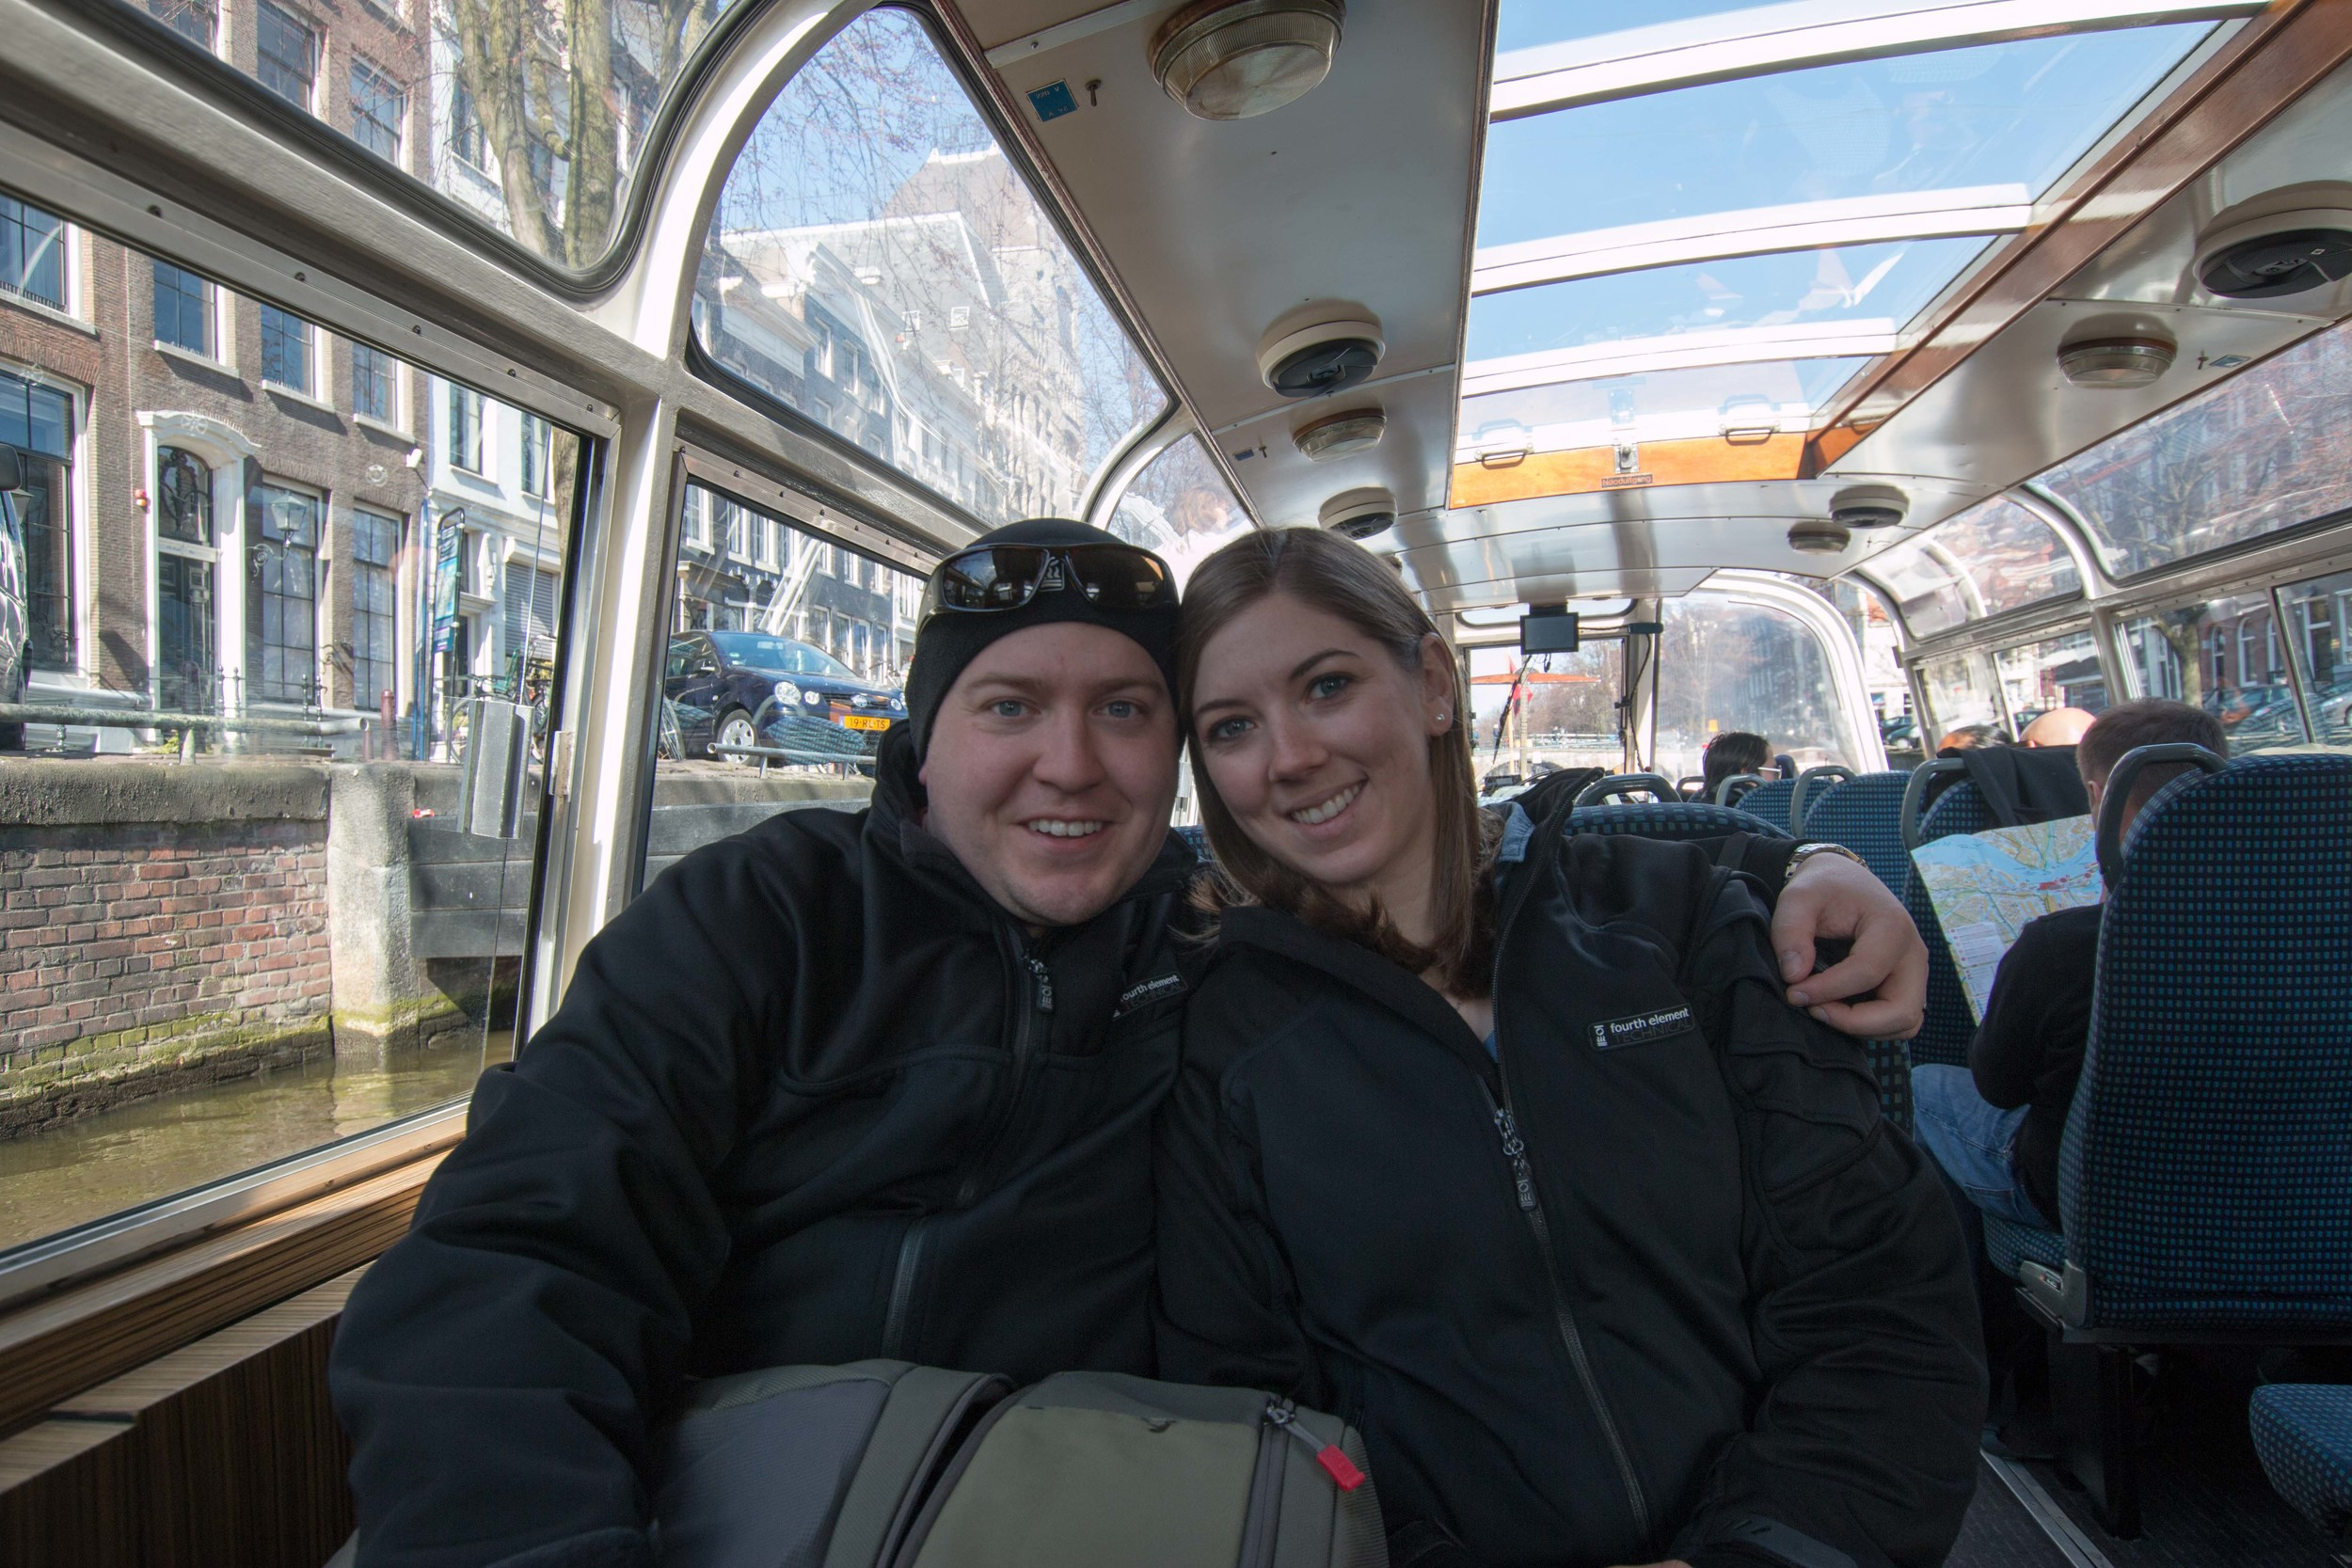 Aaron and I on the canal tour. Finally we got some pictures together this trip!